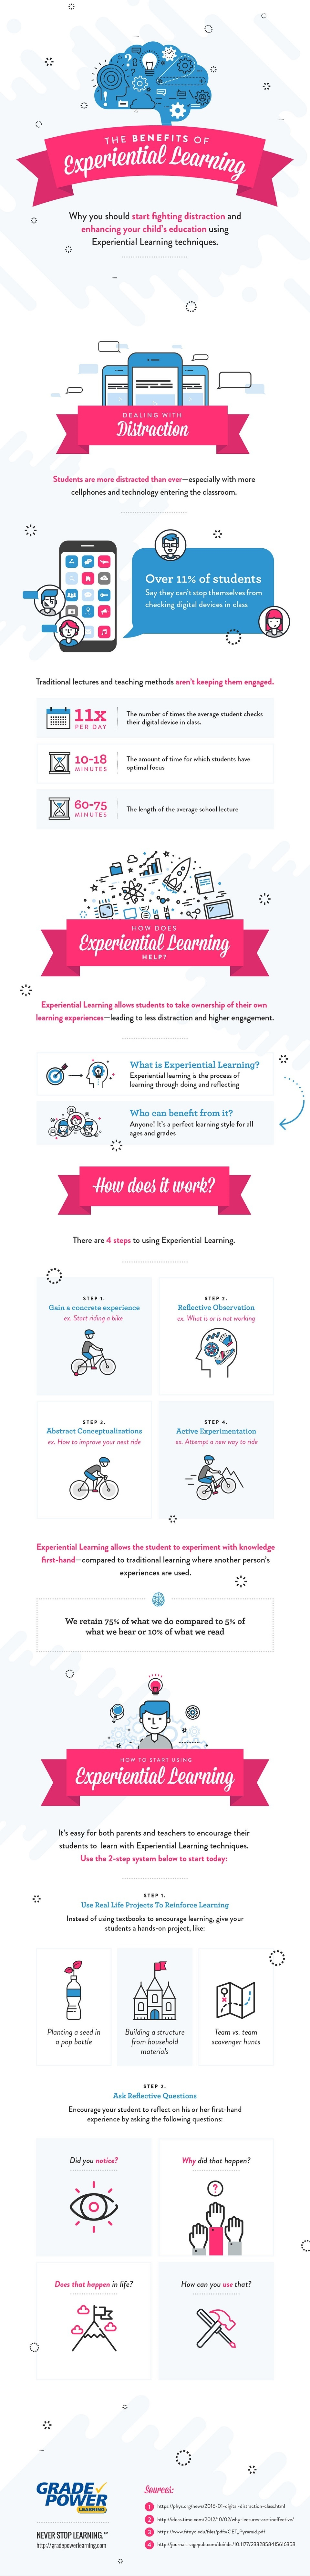 Experiential Learning Benefits Infographic